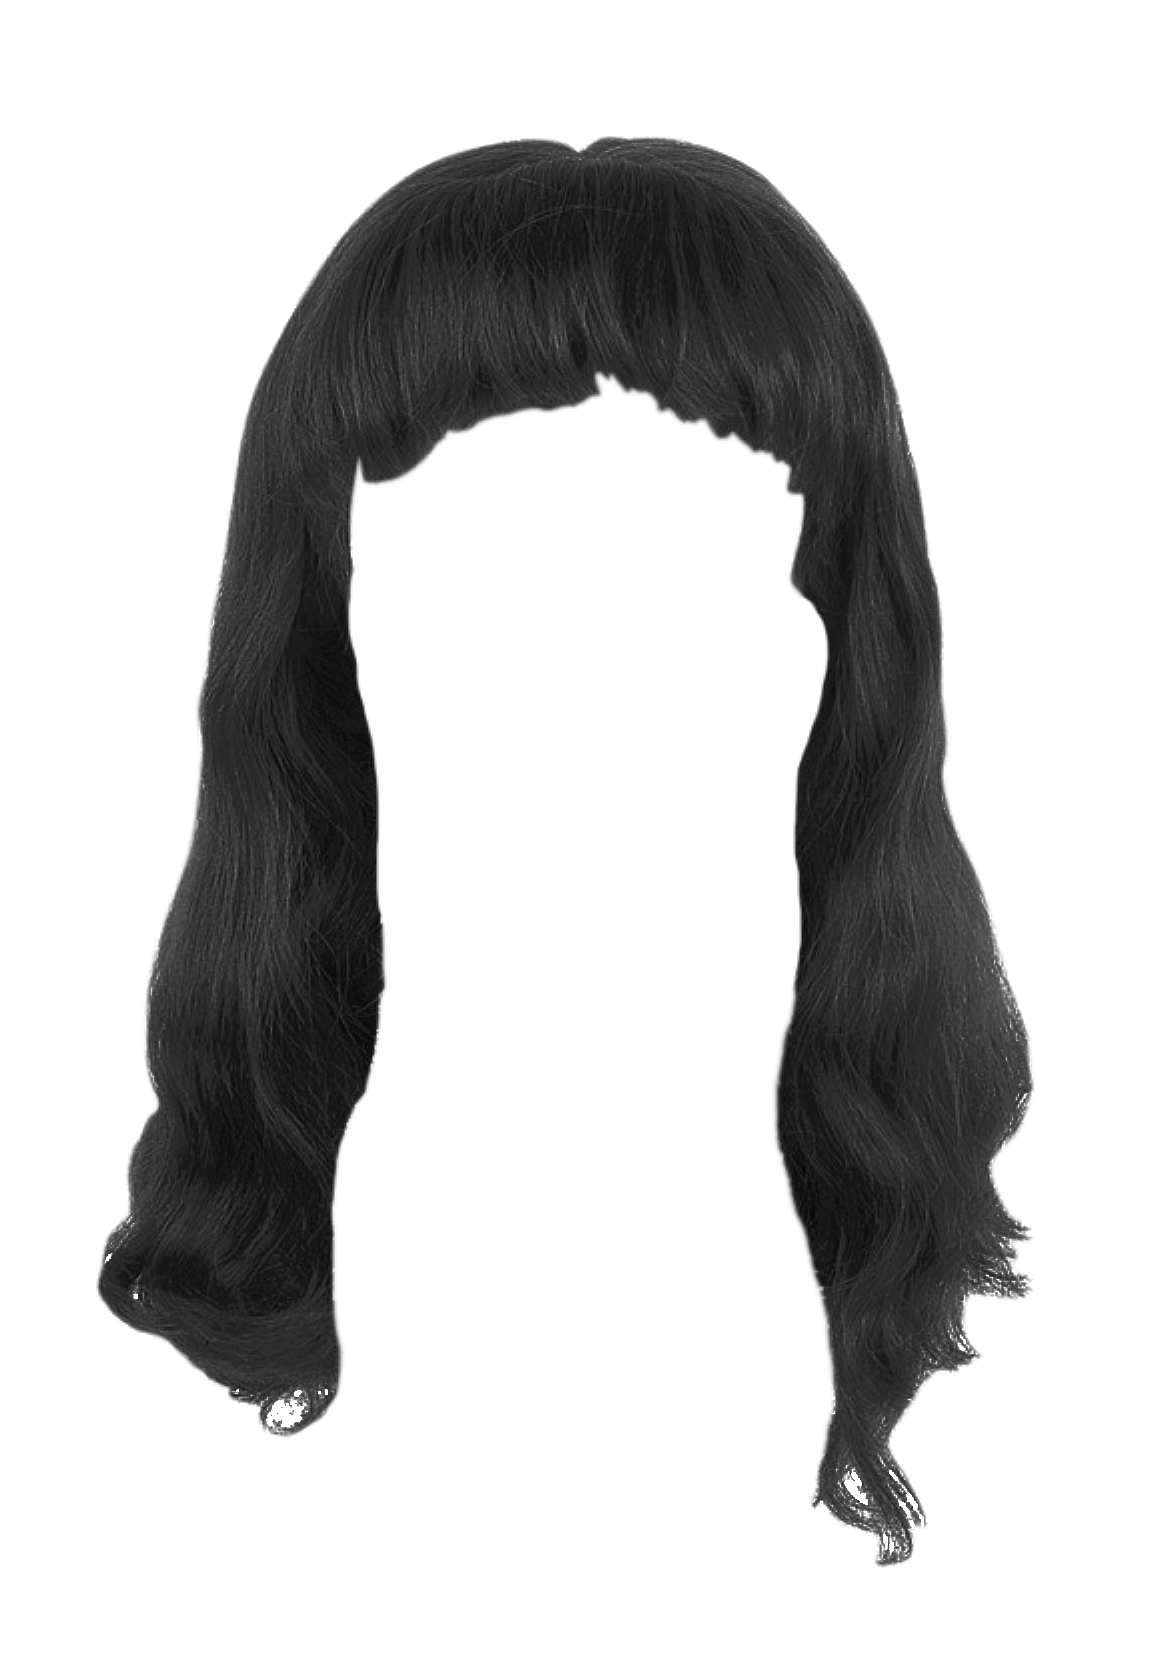 Girls transparent hair. Png images pluspng girl